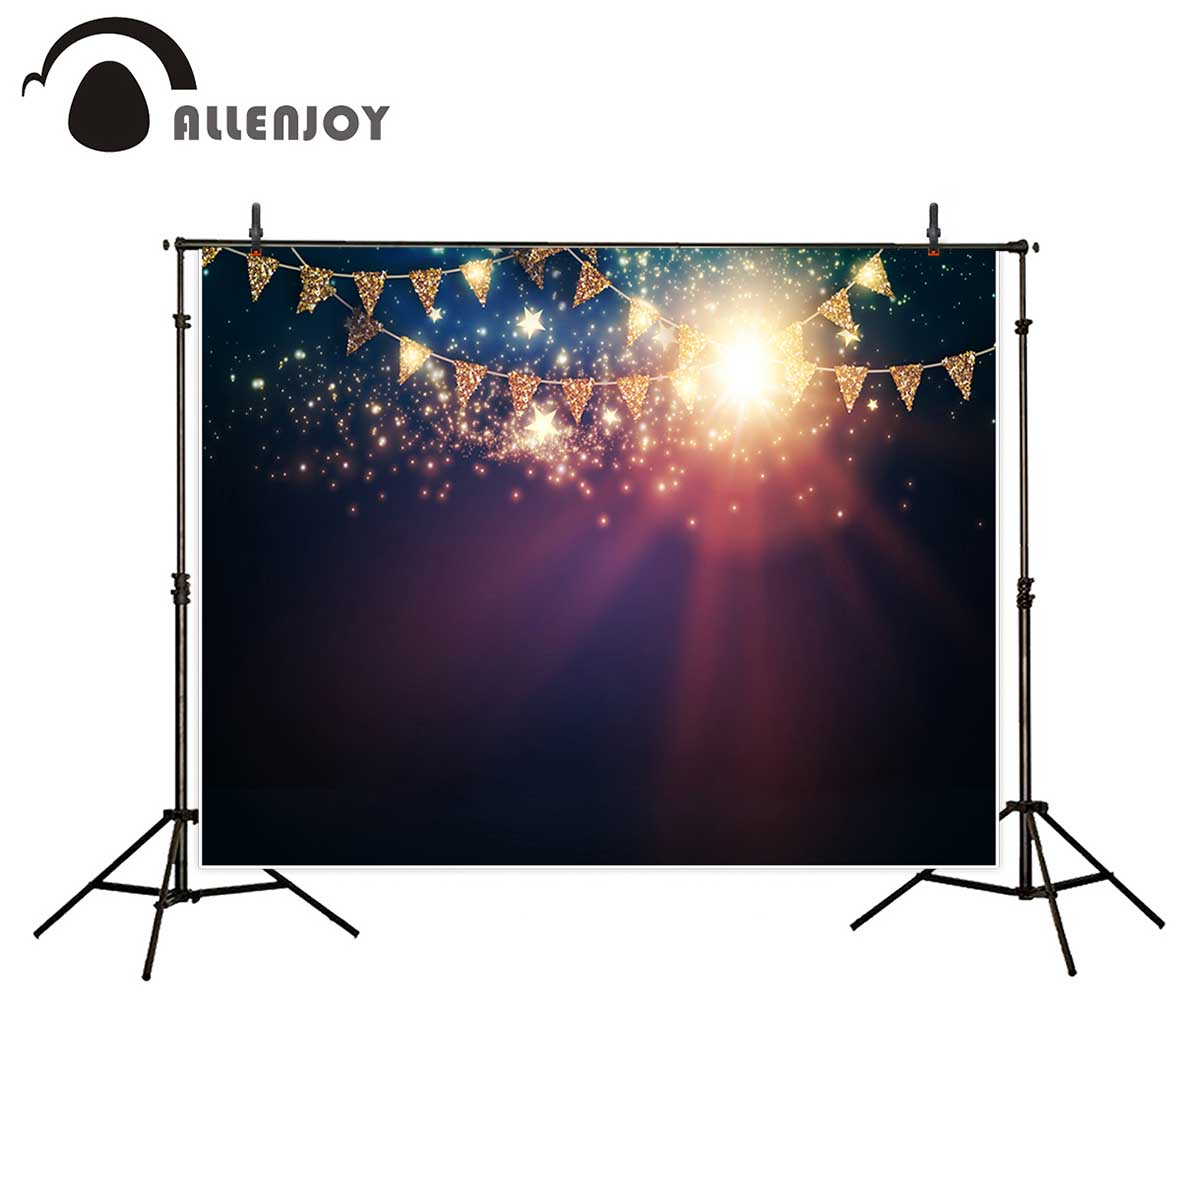 Allenjoy newborn photography background bokeh golden flags glitter stars Halo photobooth backdrop photographic allenjoy photography background blue red abstract christmas background golden stars glitter bokeh lights backdrop photo studio